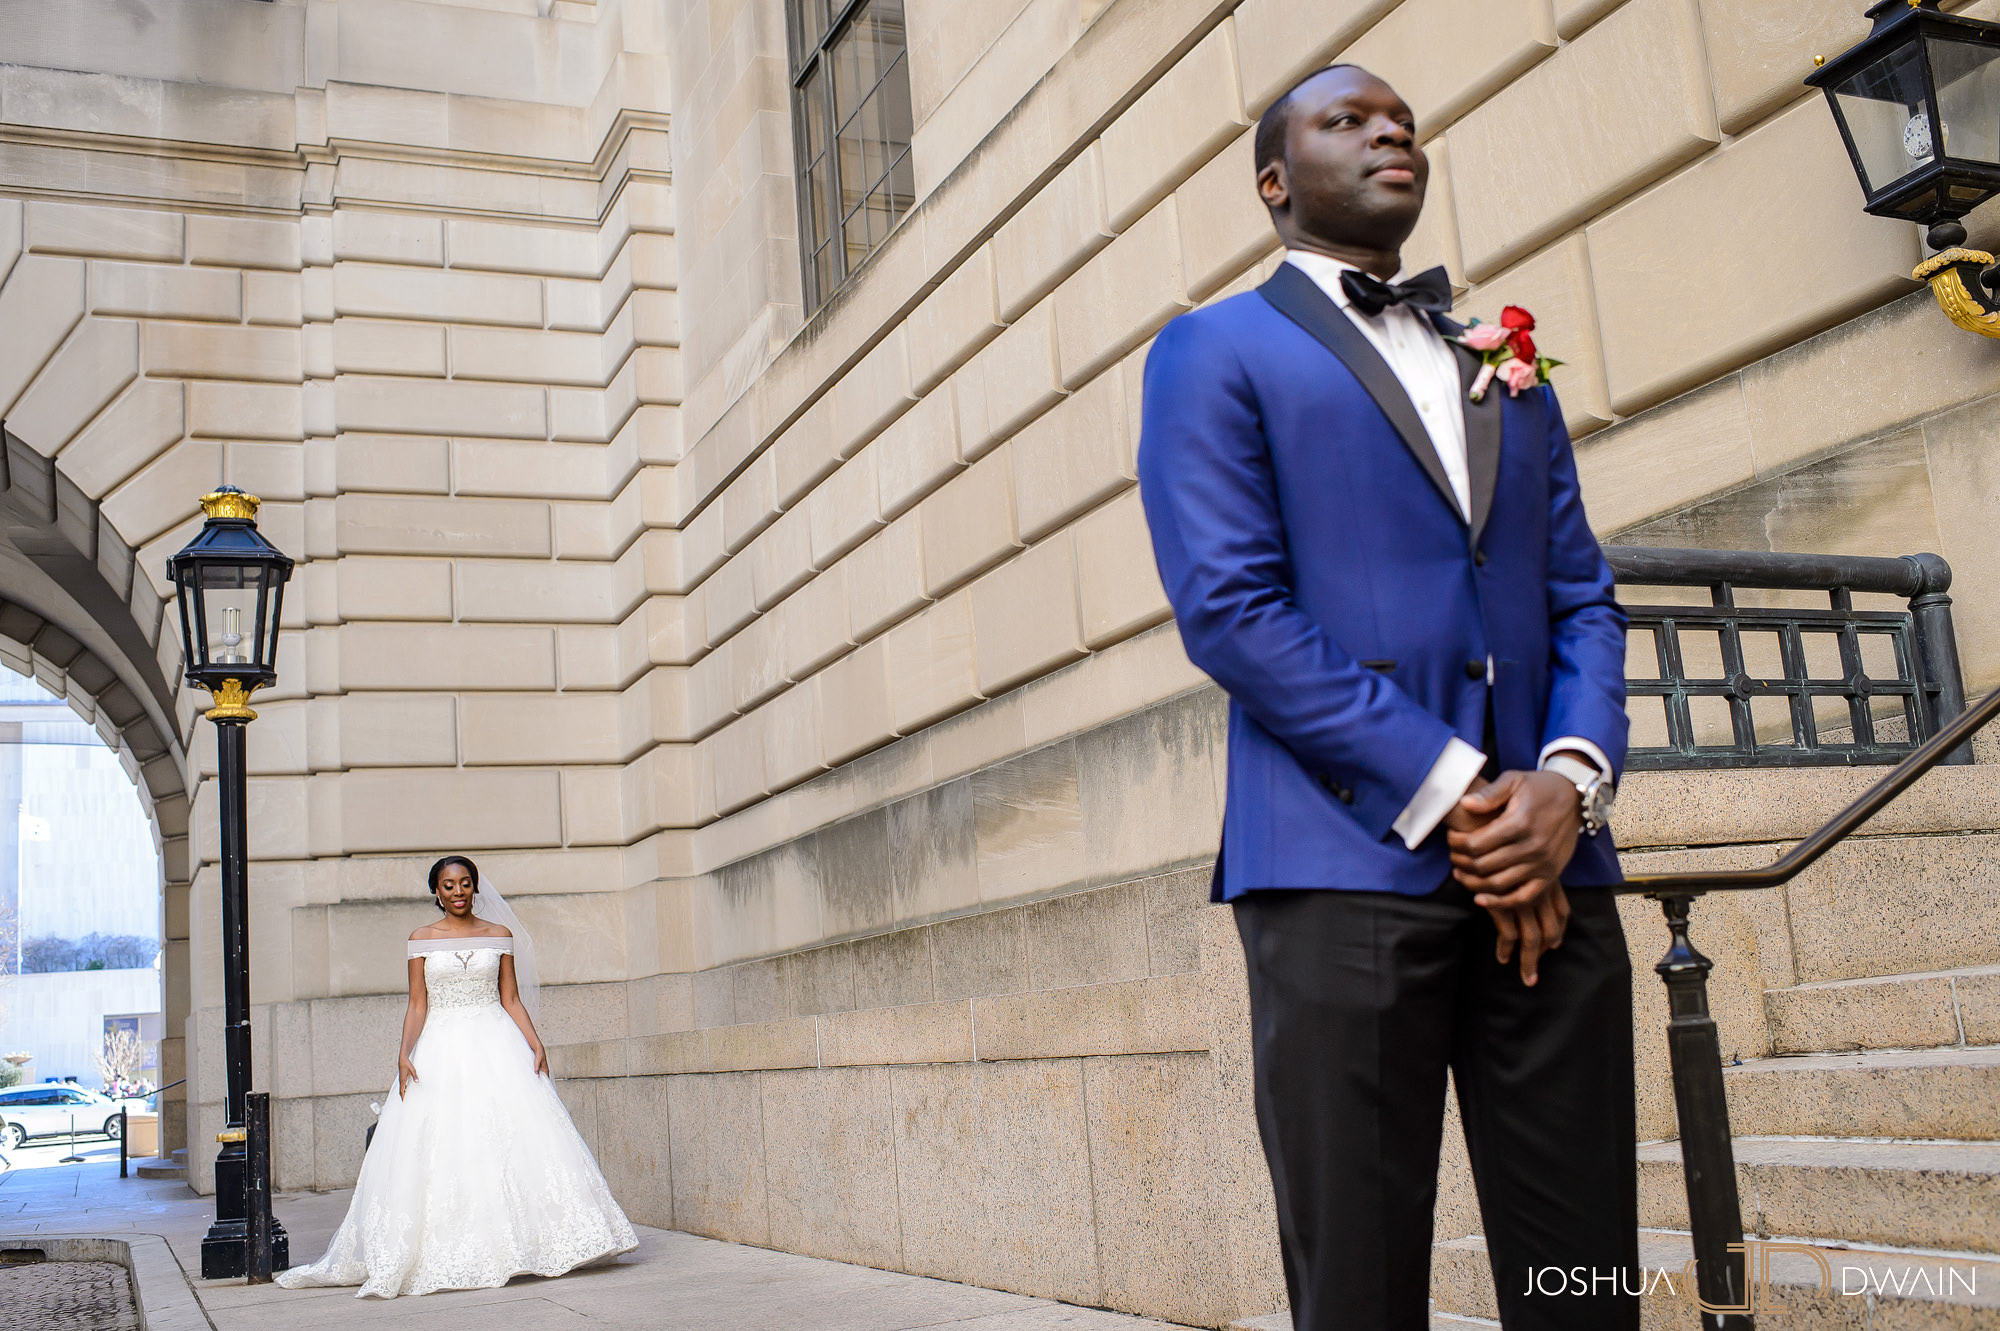 emerald-tolu--019-ronald-reagan-building-trade-center-best-washington-dc--wedding-photographer-joshua-dwain